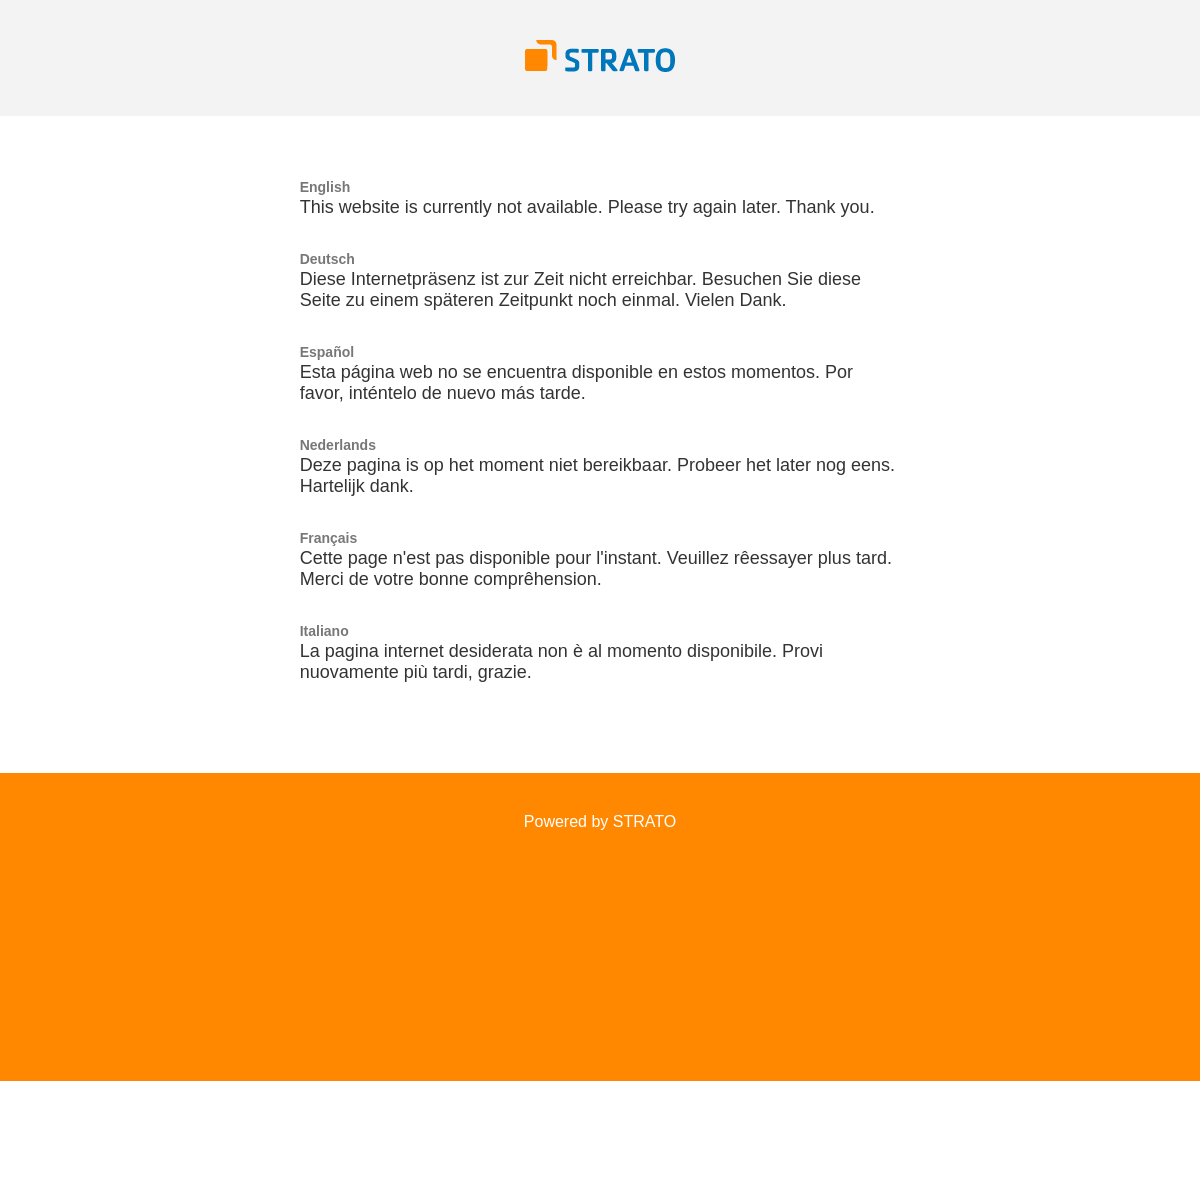 STRATO - Domain not available